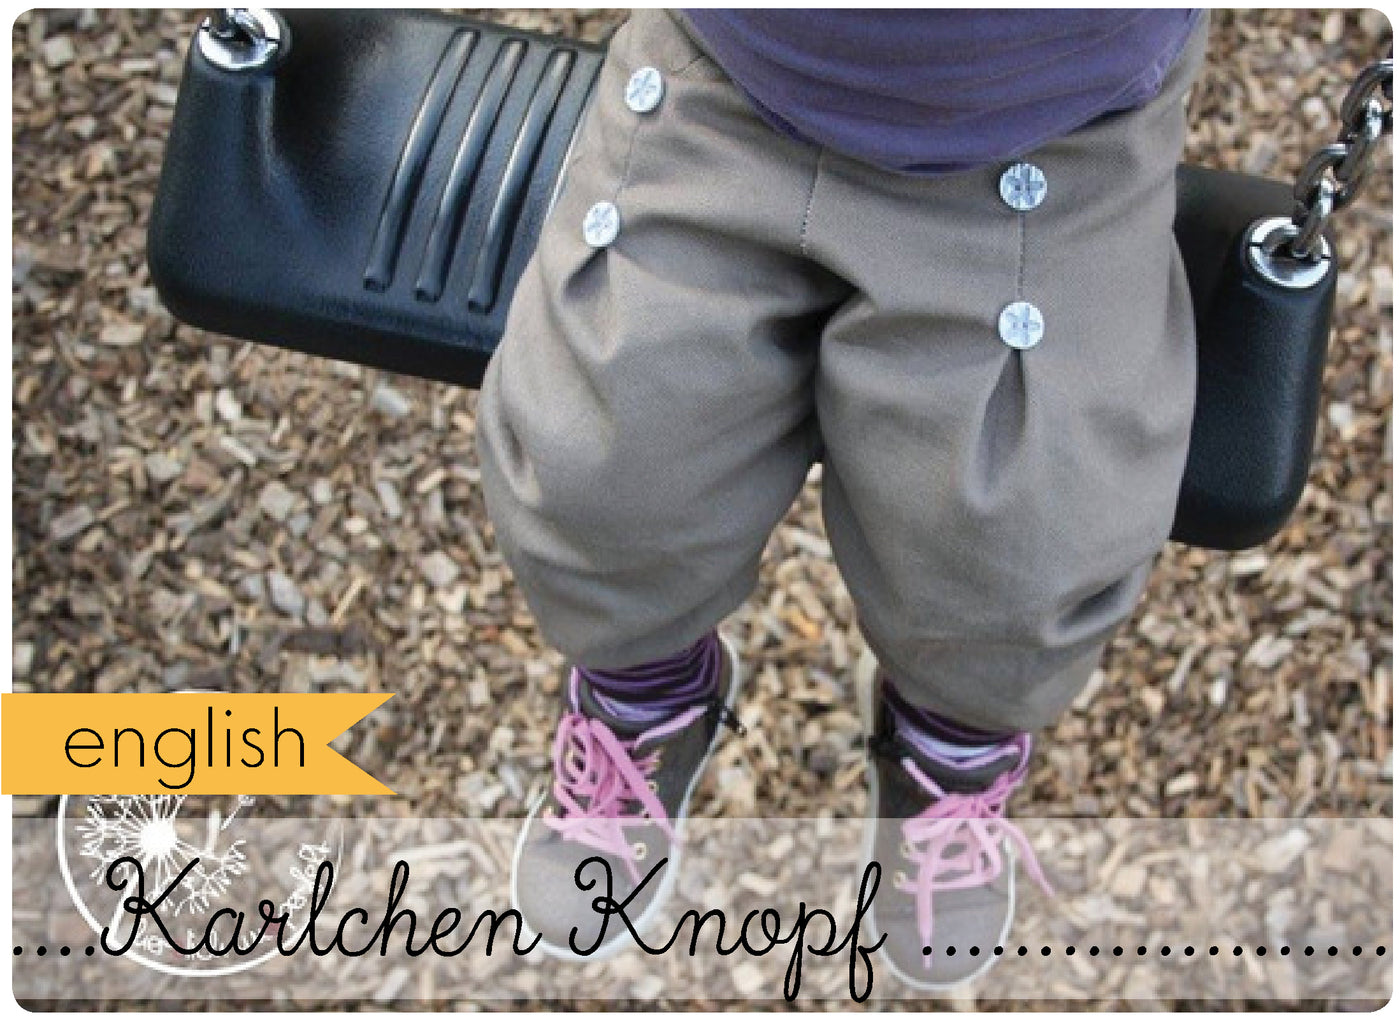 Karlchen Knopf baggy trousers (english)